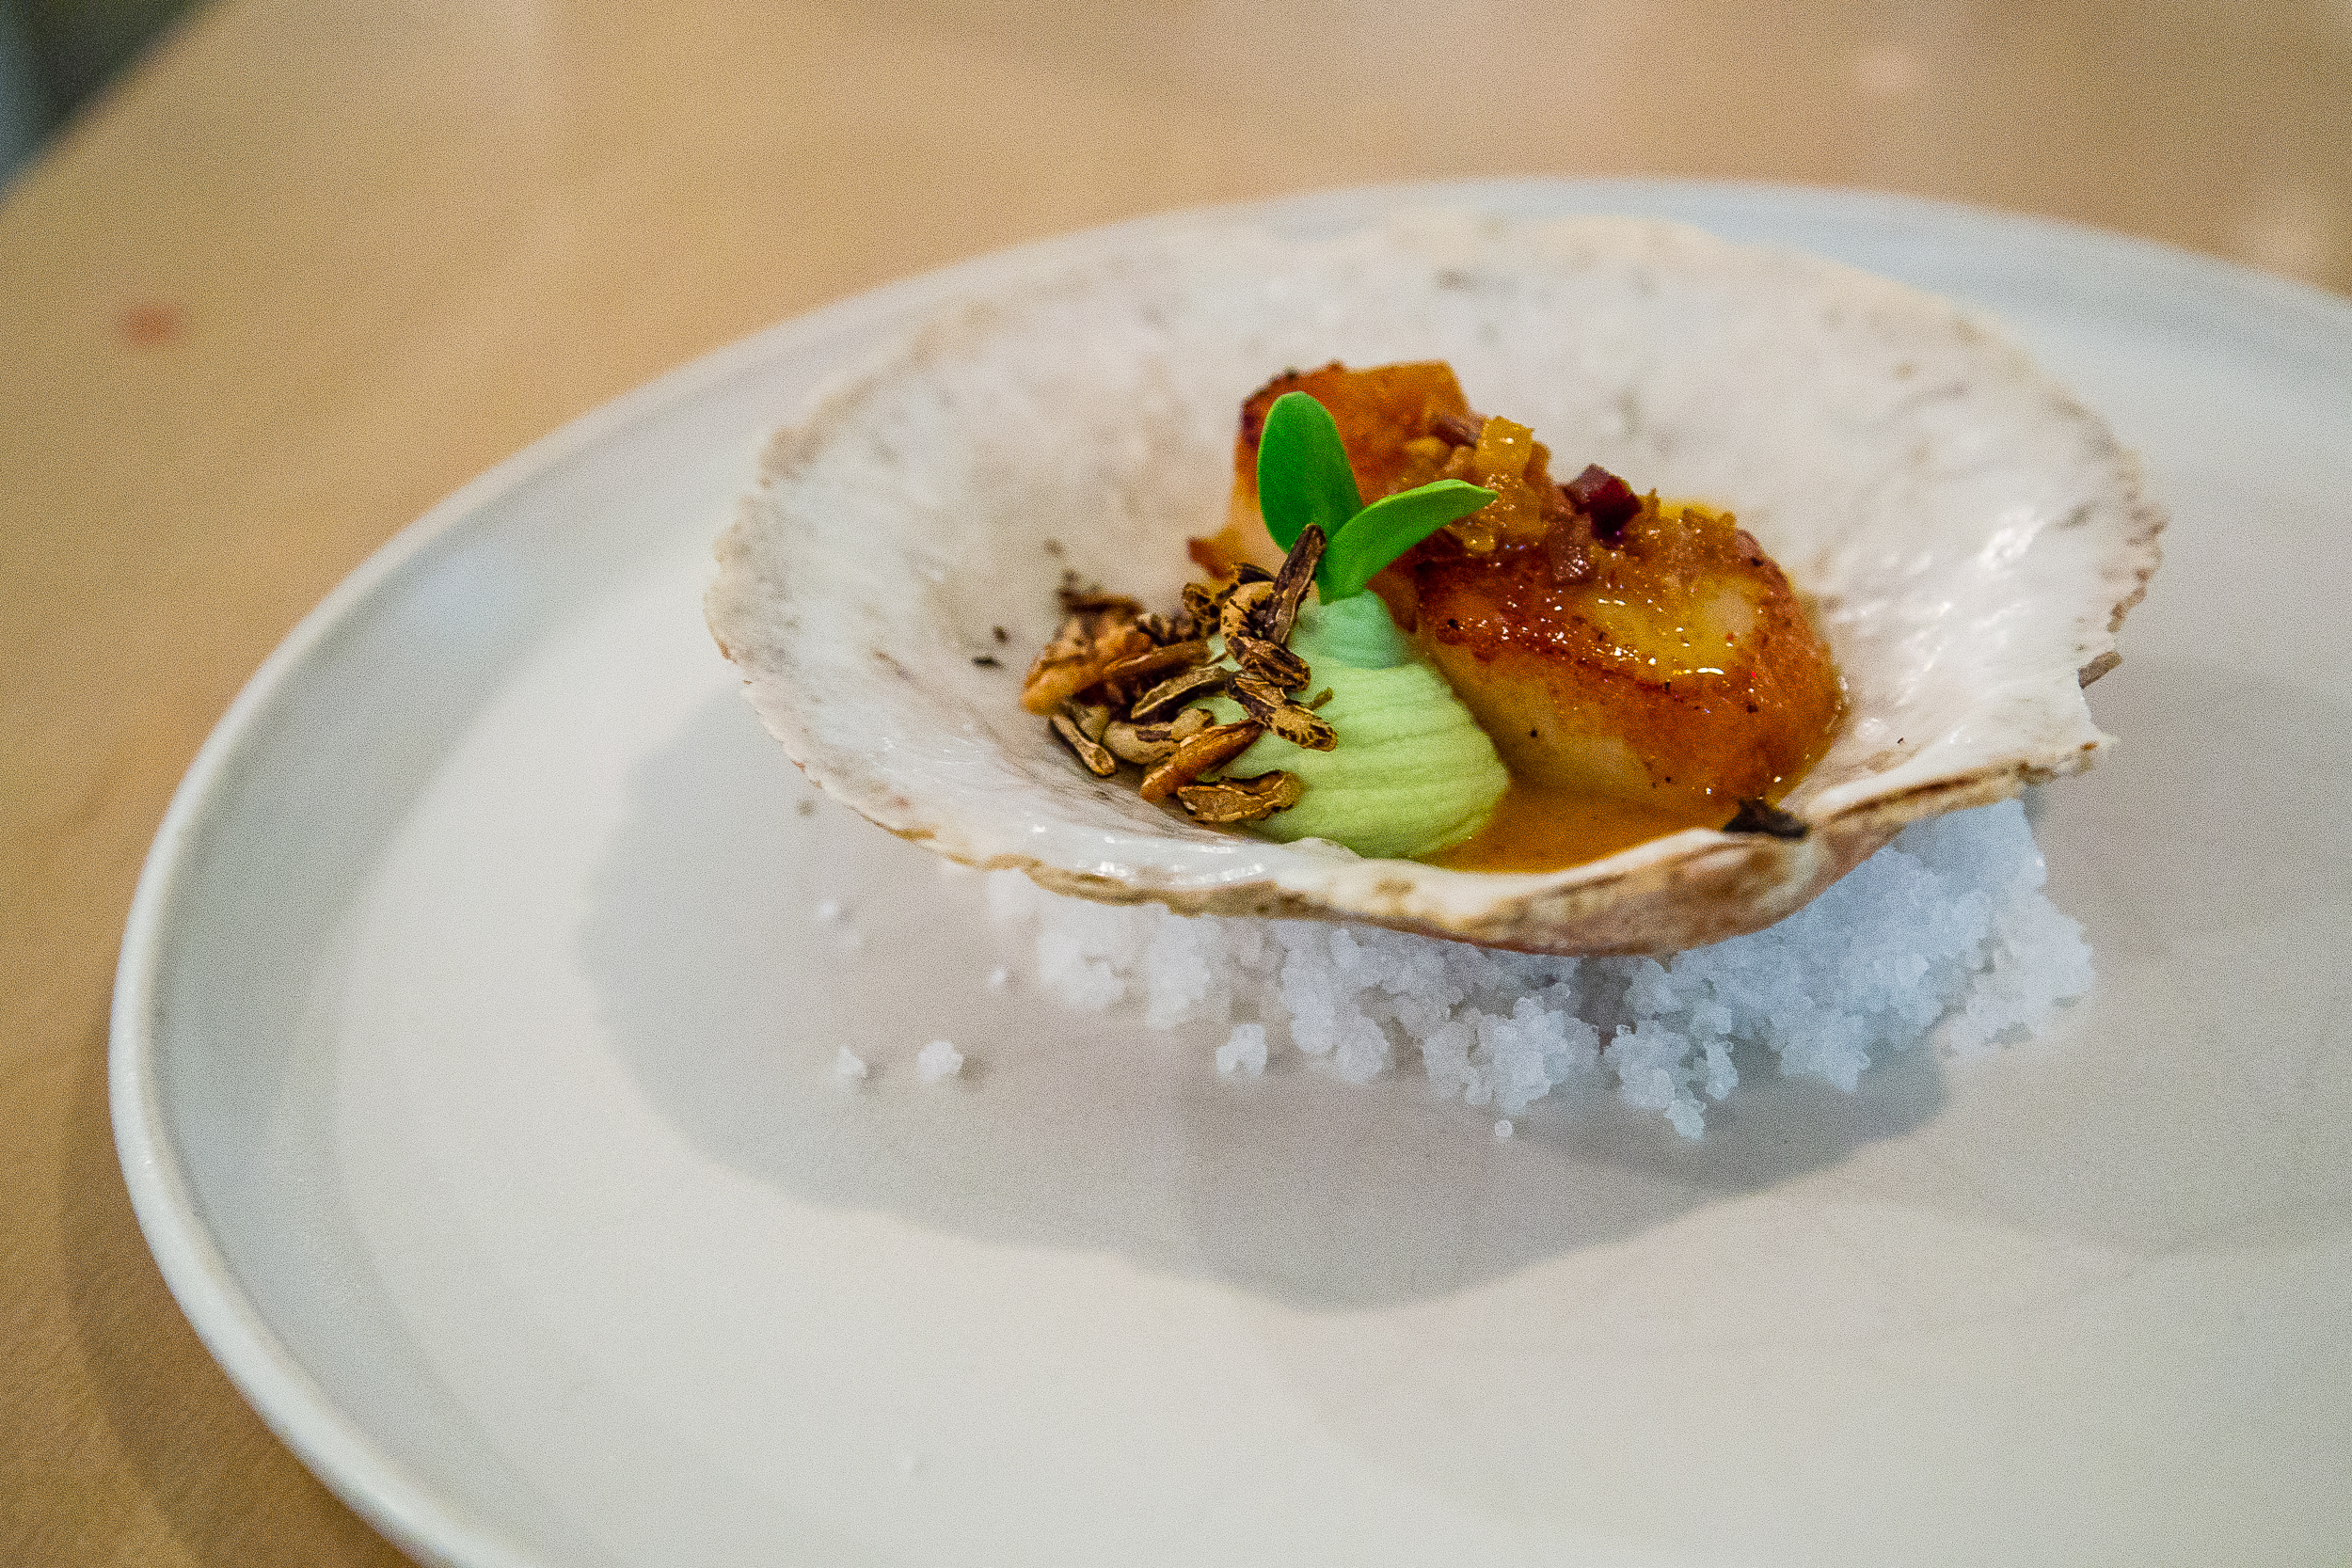 Scallop, X.O. Sauce (housemade from scallops), Edamame Purée, Wild Rice